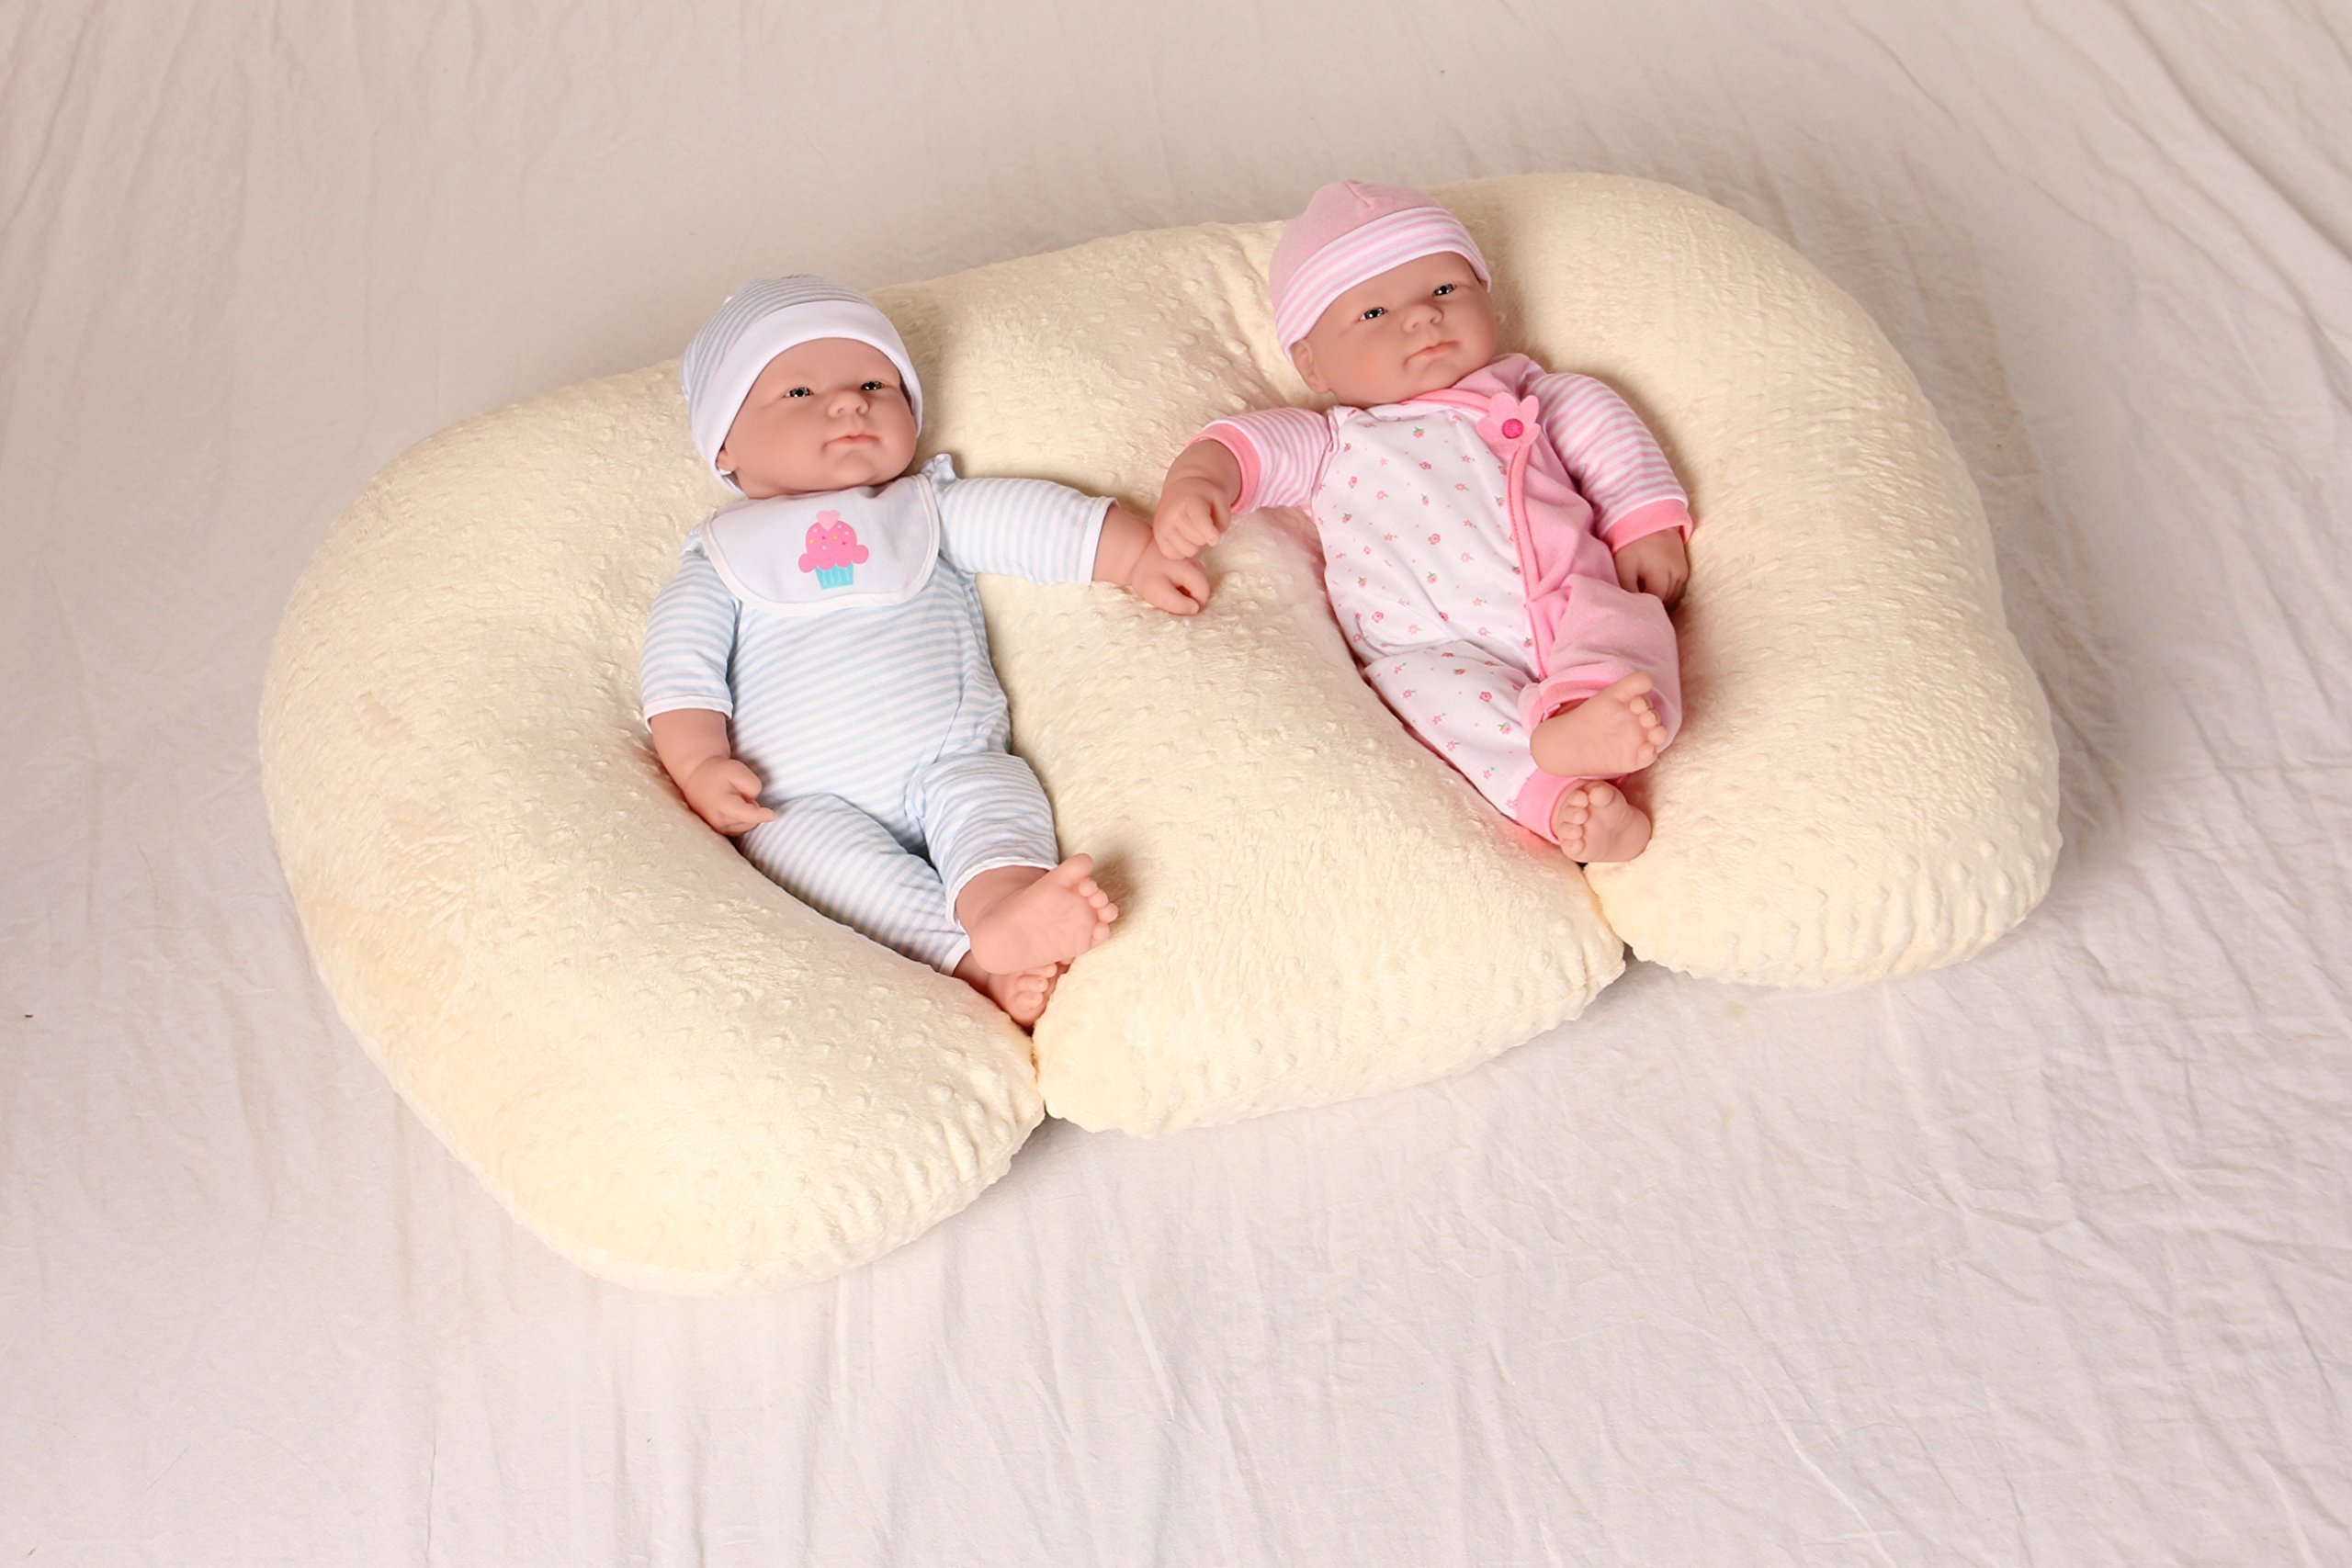 THE TWIN Z PILLOW - CREAM - 6 uses in 1 Twin Pillow ! Breastfeeding, Bottlefeeding, Tummy Time, Reflux, Support and Pregnancy Pillow! CUDDLE CREAM DOTS by Twin Z PIllow (Image #6)